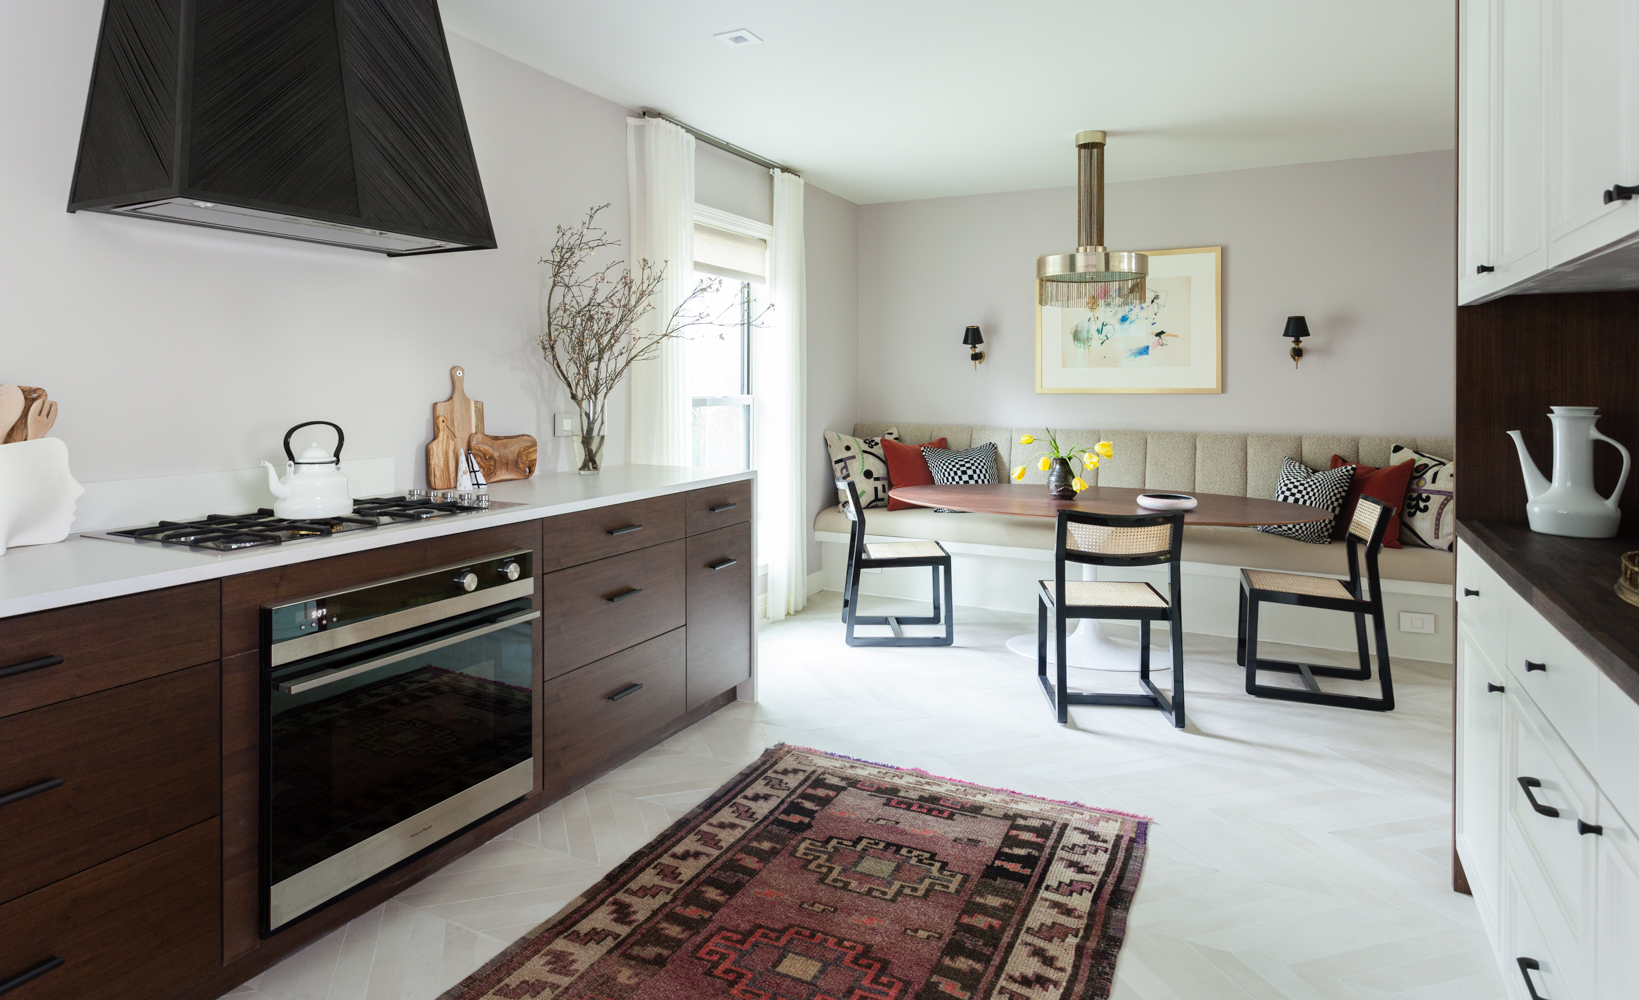 Kitchen remodel with chevron floors built in banquette walnut cabinets and modern appliances.